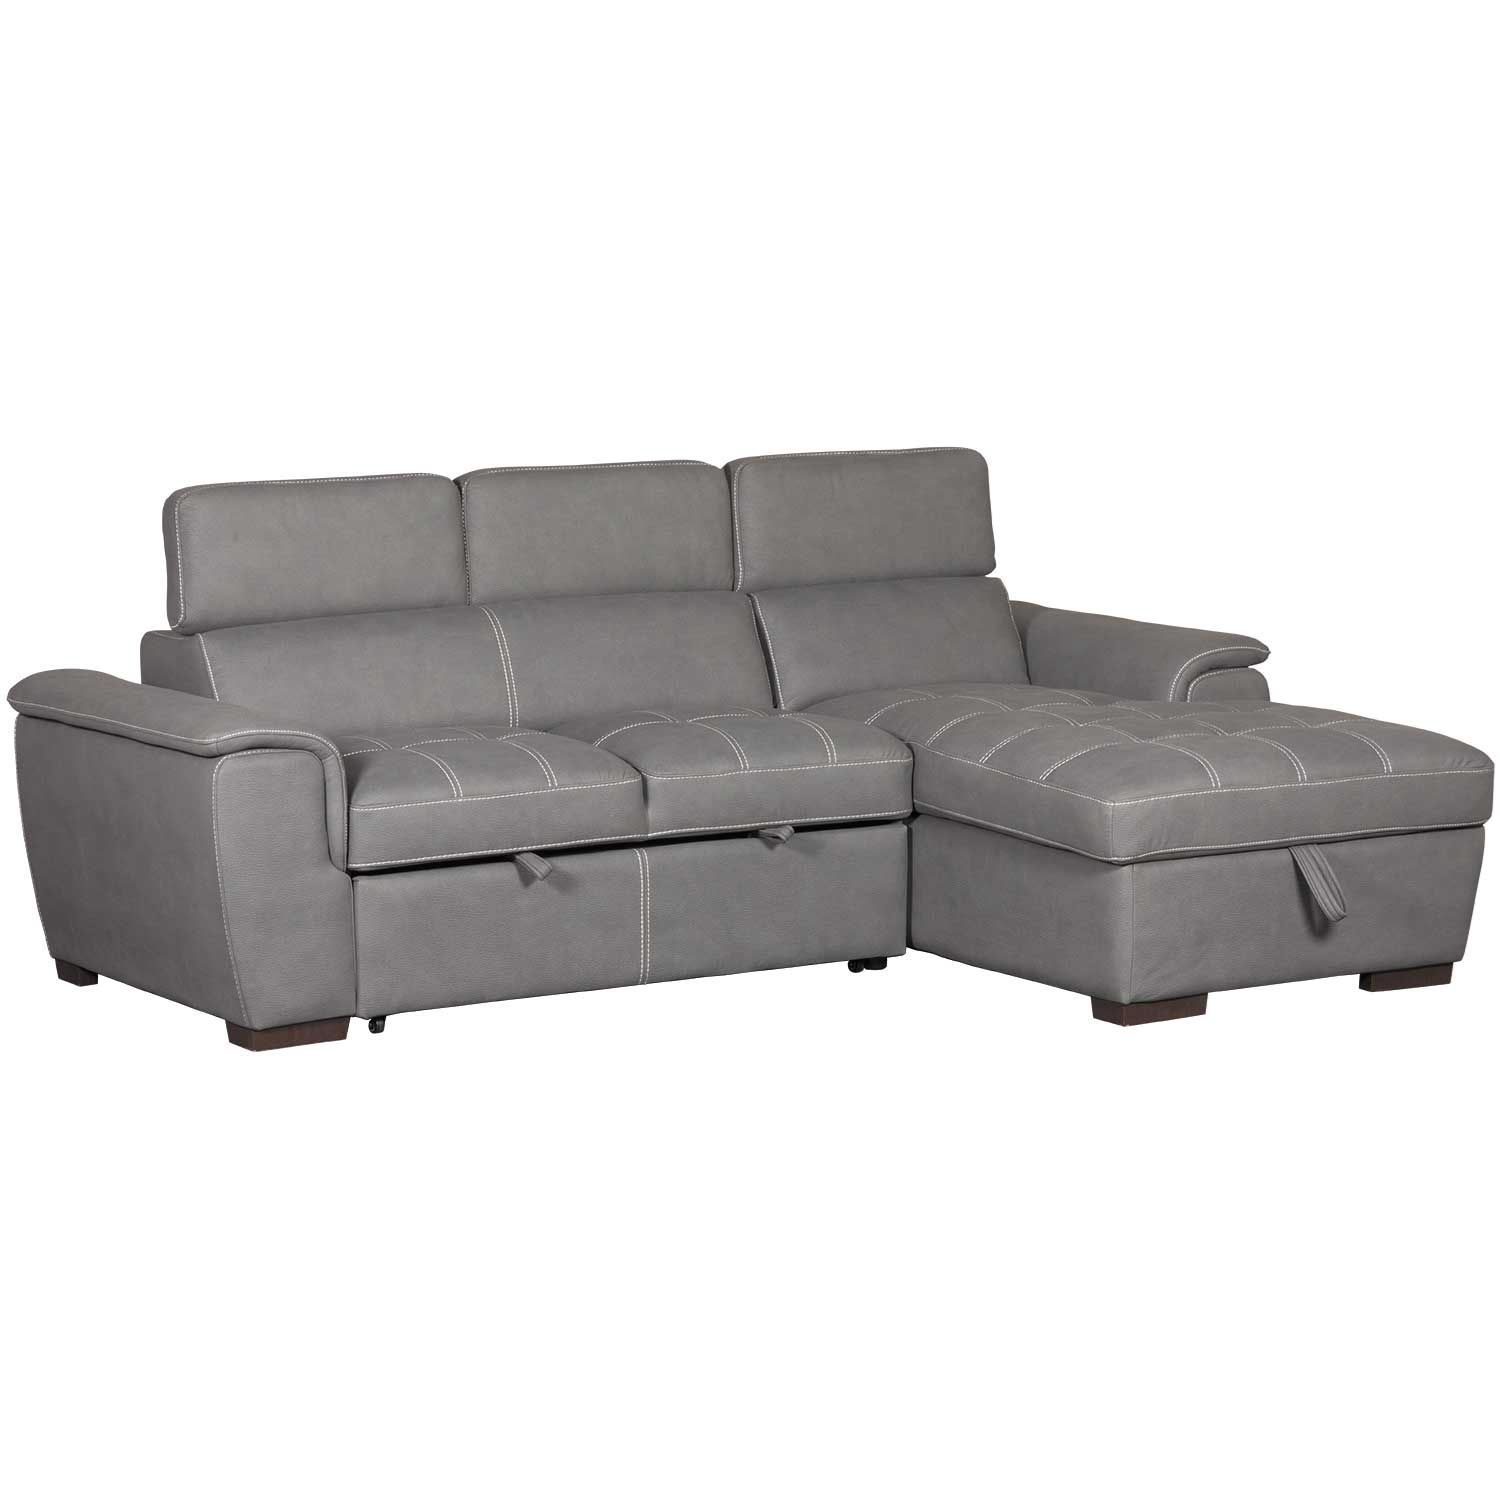 Sectional Pull Out Couch Levi 2 Piece Sectional With Pull Out Bed